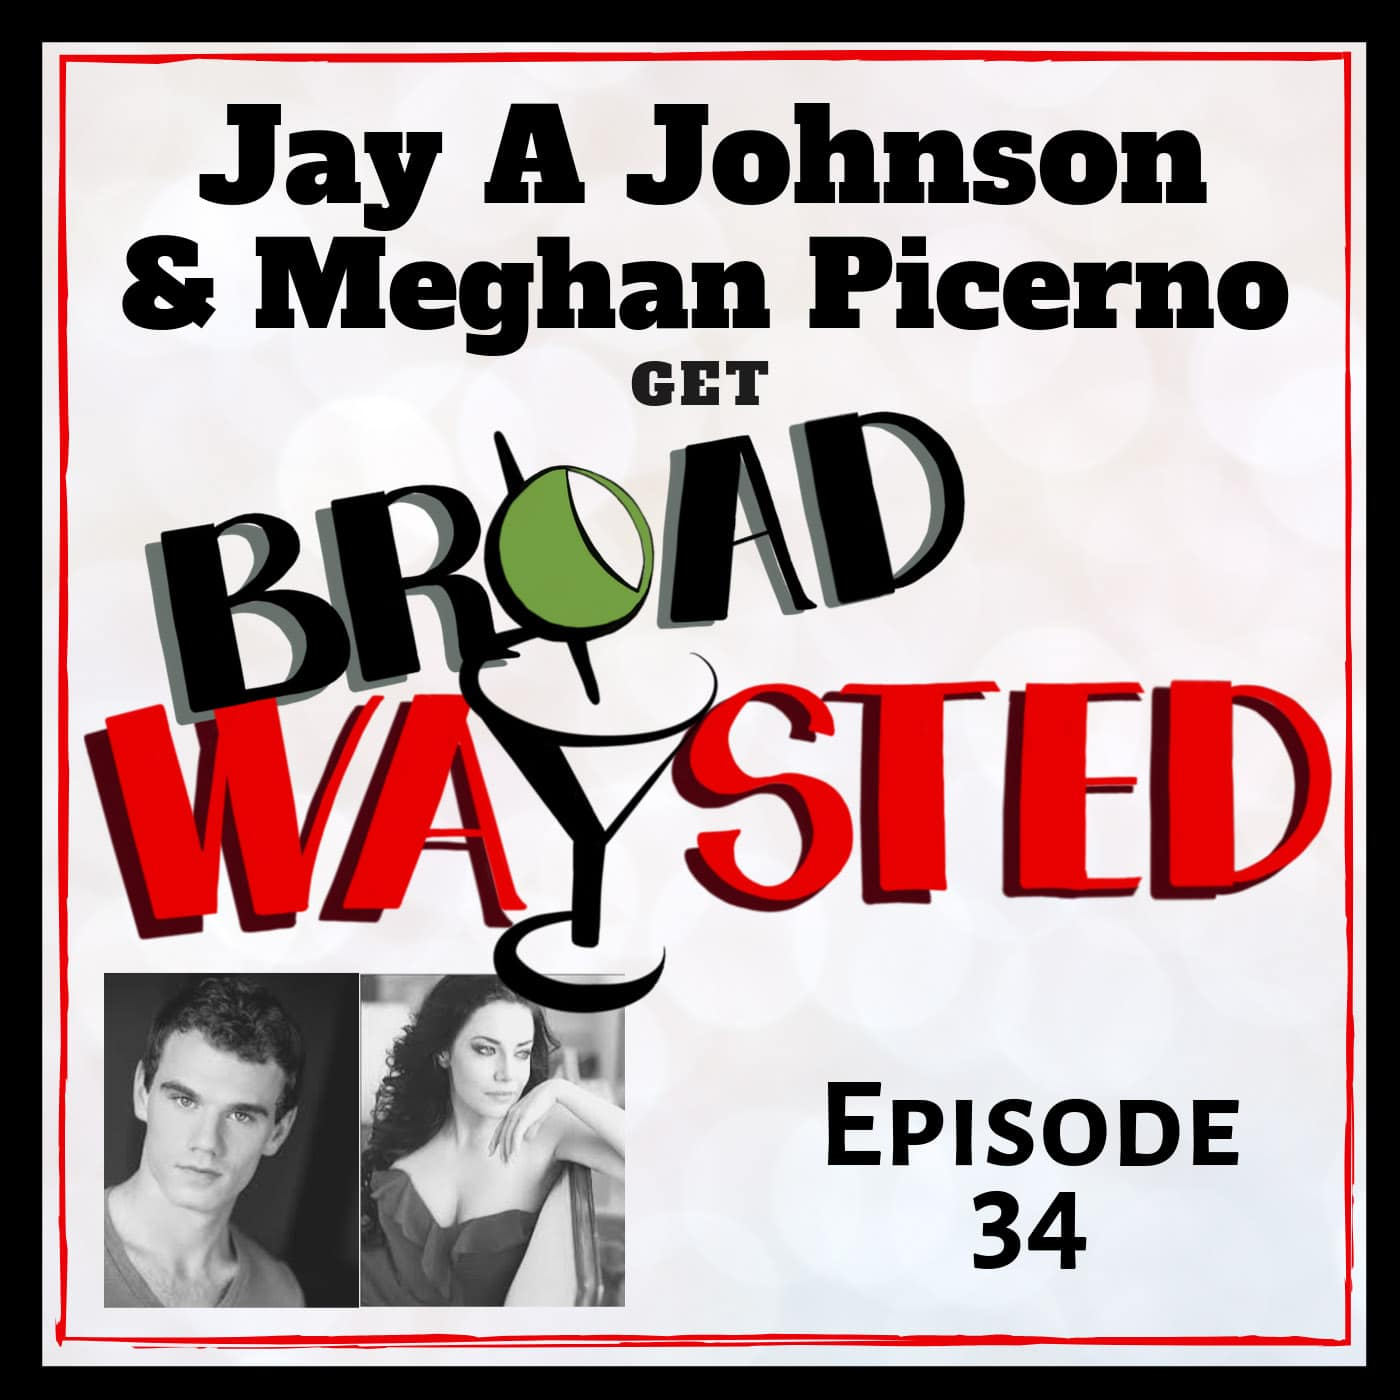 Broadwaysted Ep 34 Jay A Johnson and Meghan Picerno